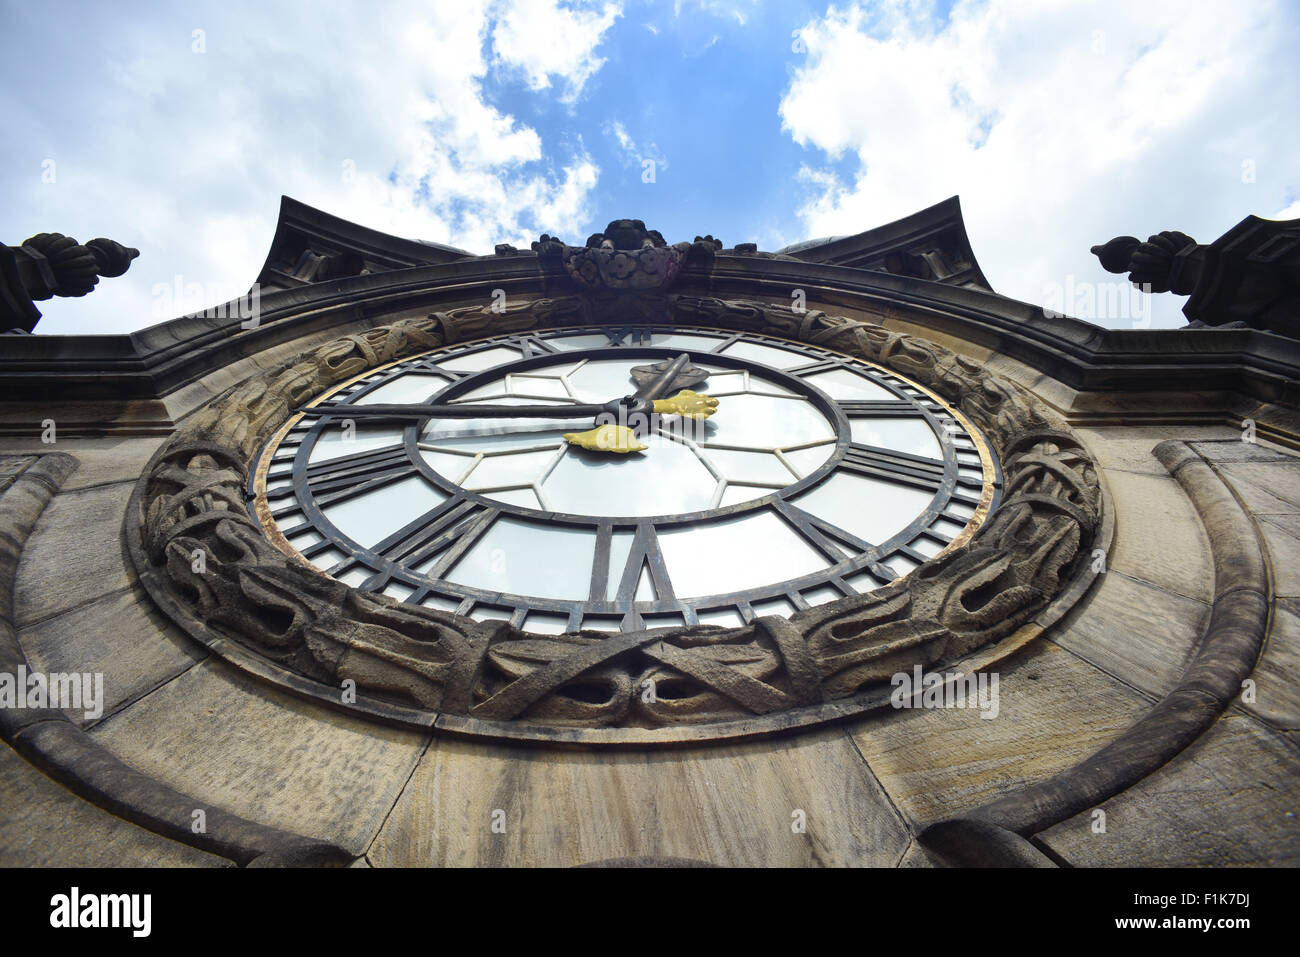 leeds town hall clock face designed by edward beckett denison leeds yorkshire united kingdom - Stock Image